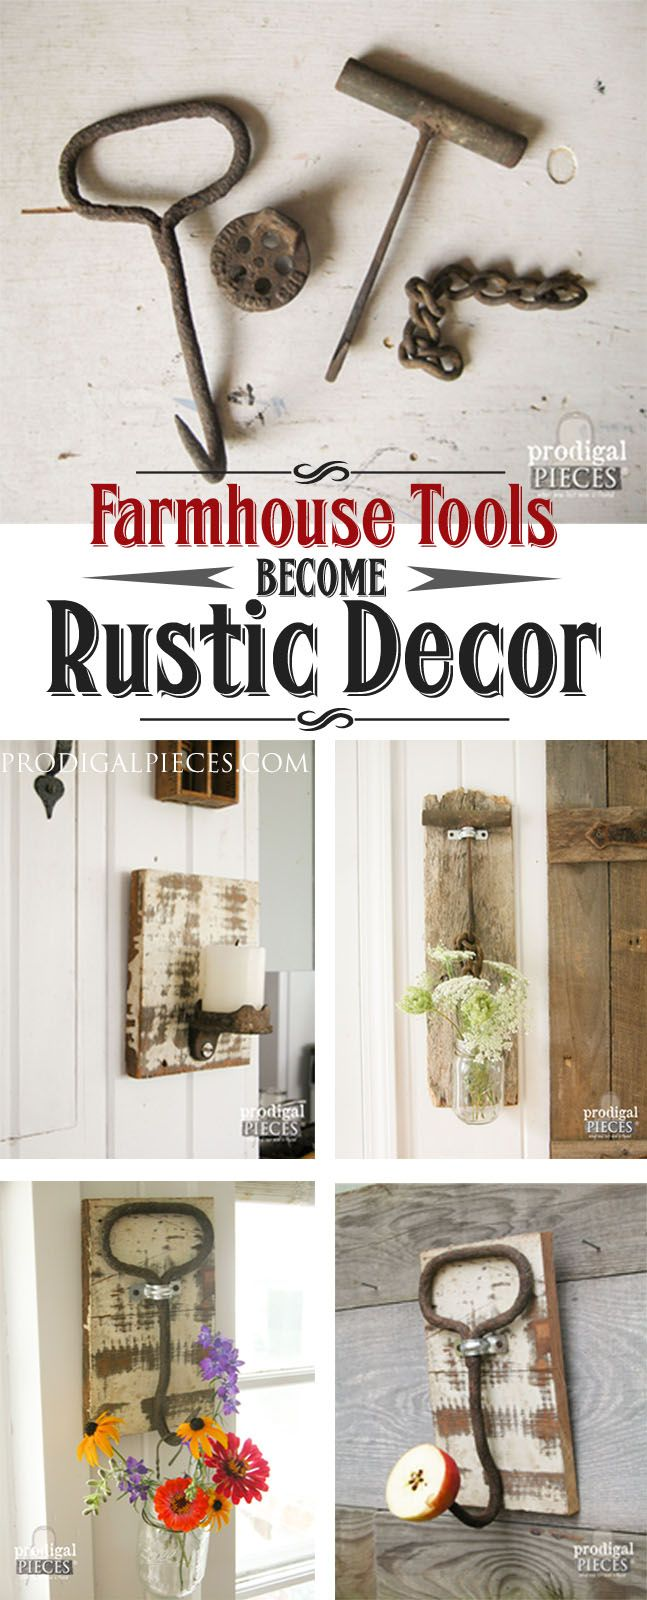 Old Farmhouse Tools Repurposed as Rustic Decor by Prodigal Pieces | www.prodigalpieces.com